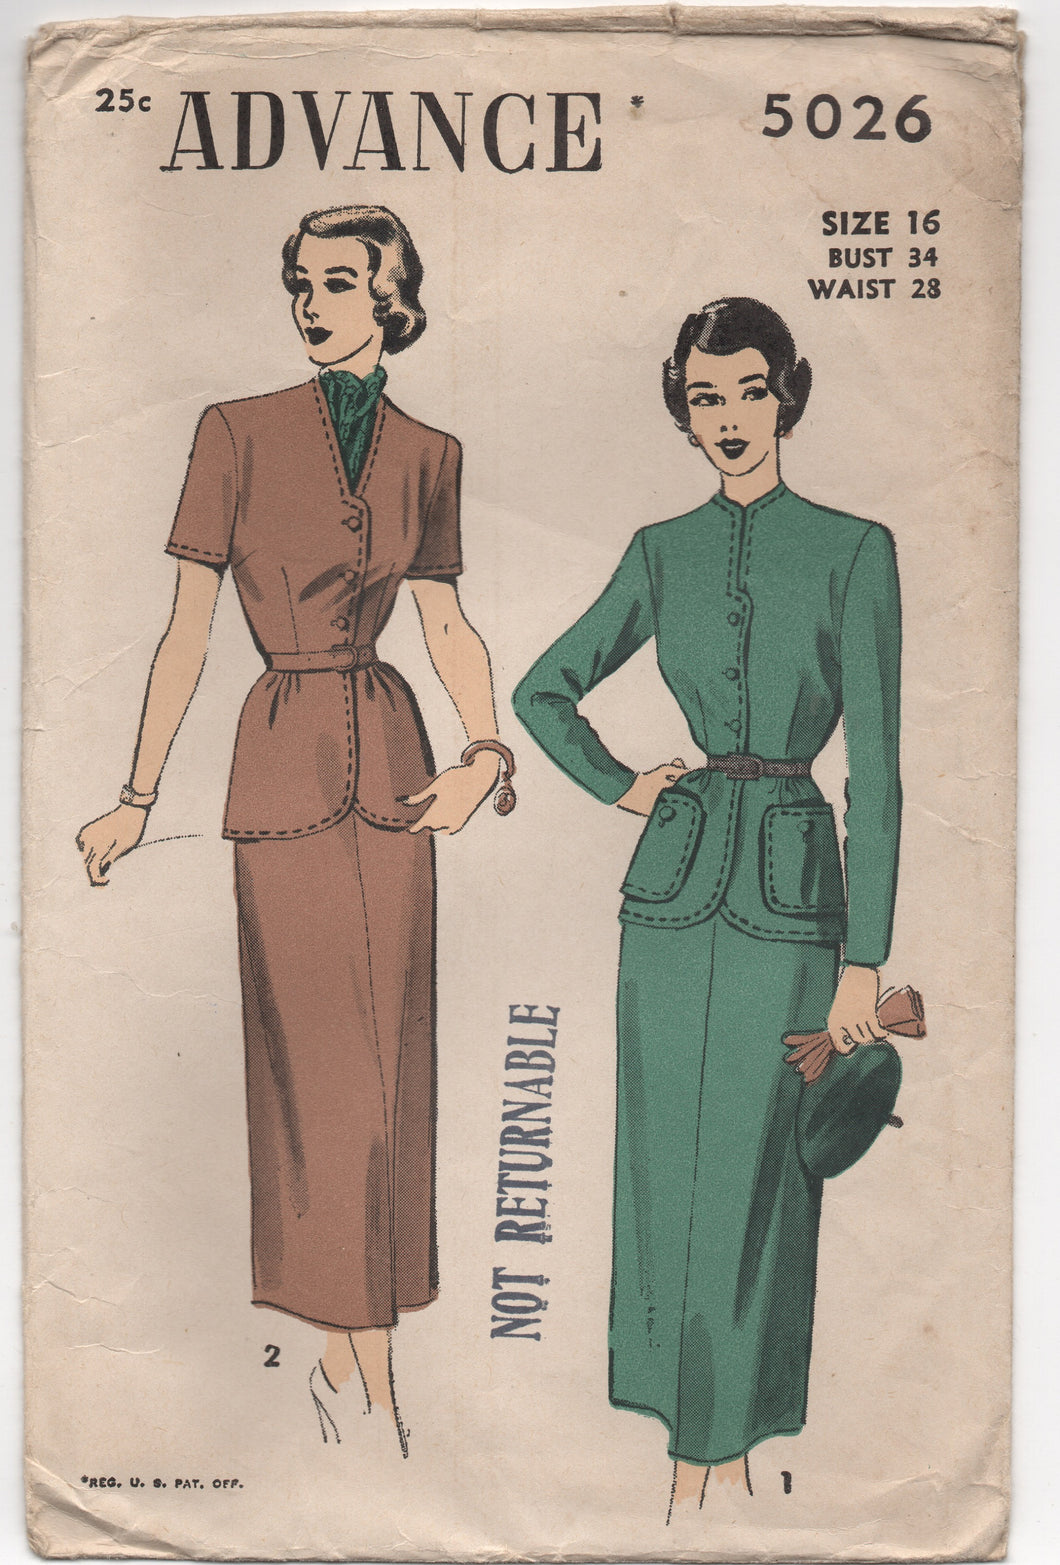 1940's Advance Two Piece Dress with Belt and Slim Skirt - Bust 34